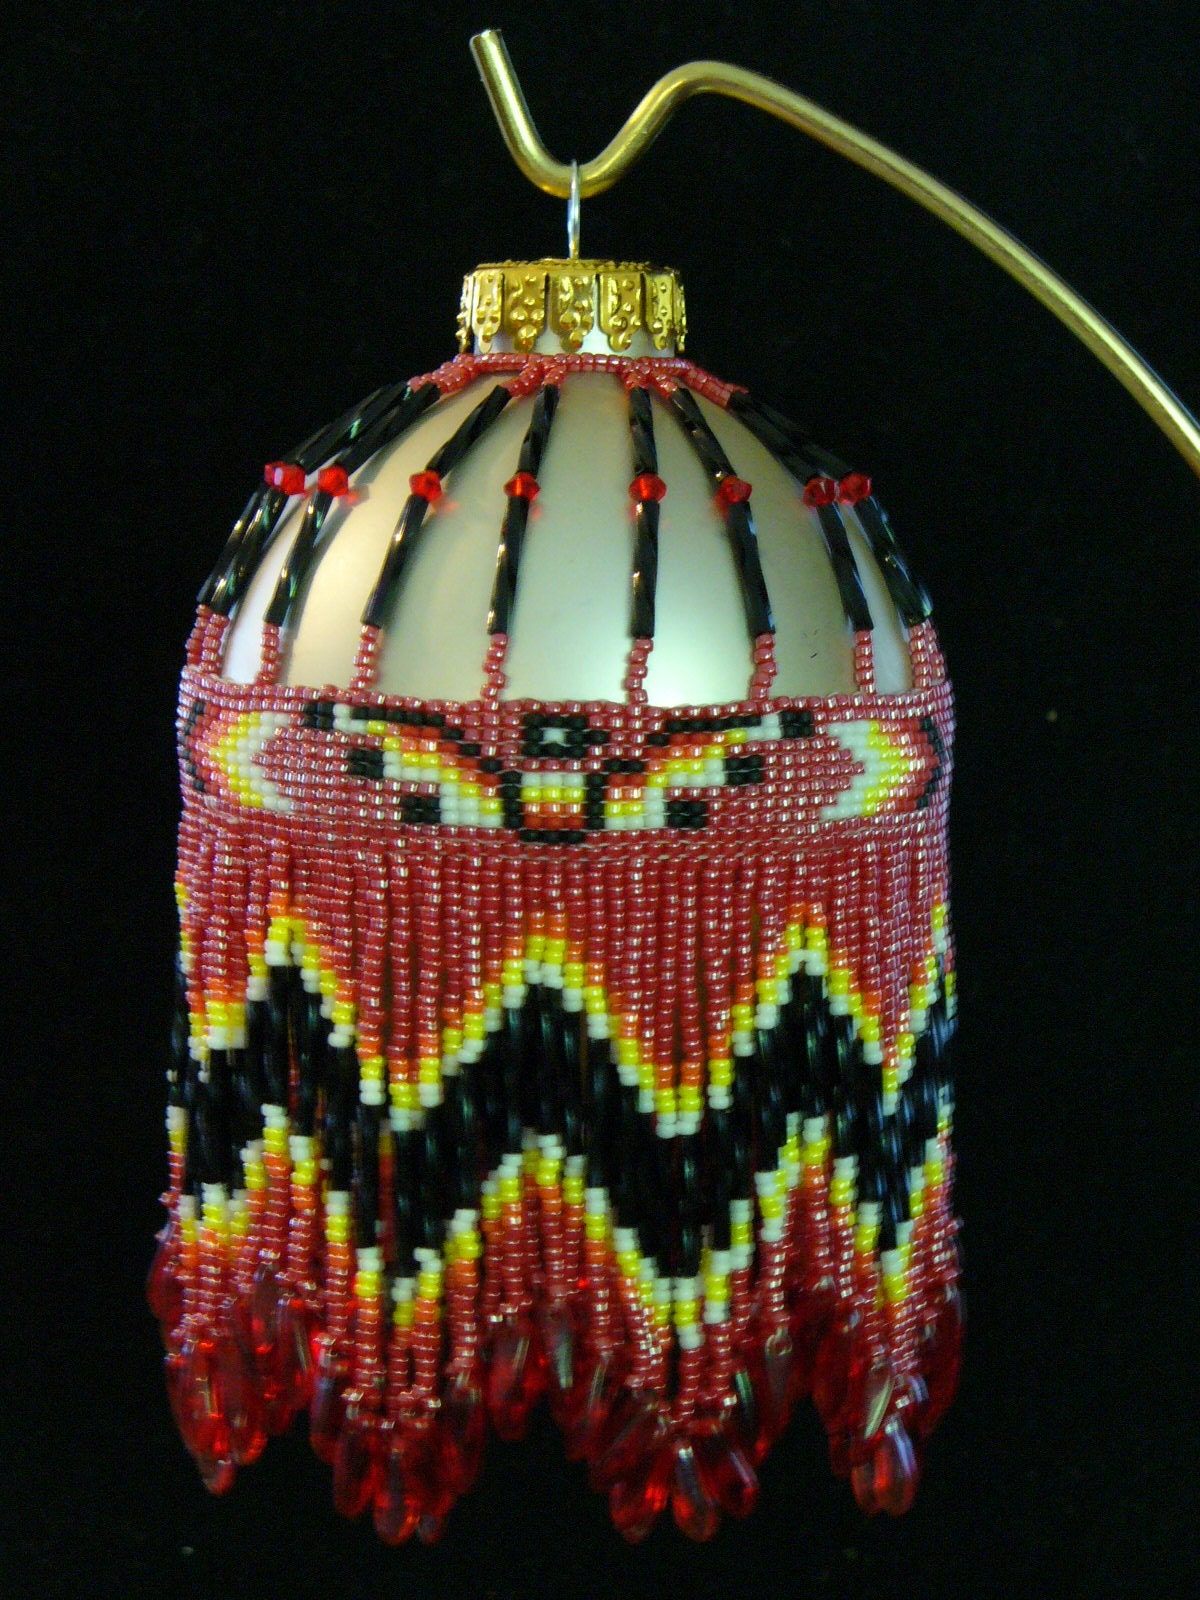 Native american ornaments - Wednesday Night Campfire Story By Bead Lady 61 The Native L63xjaqm